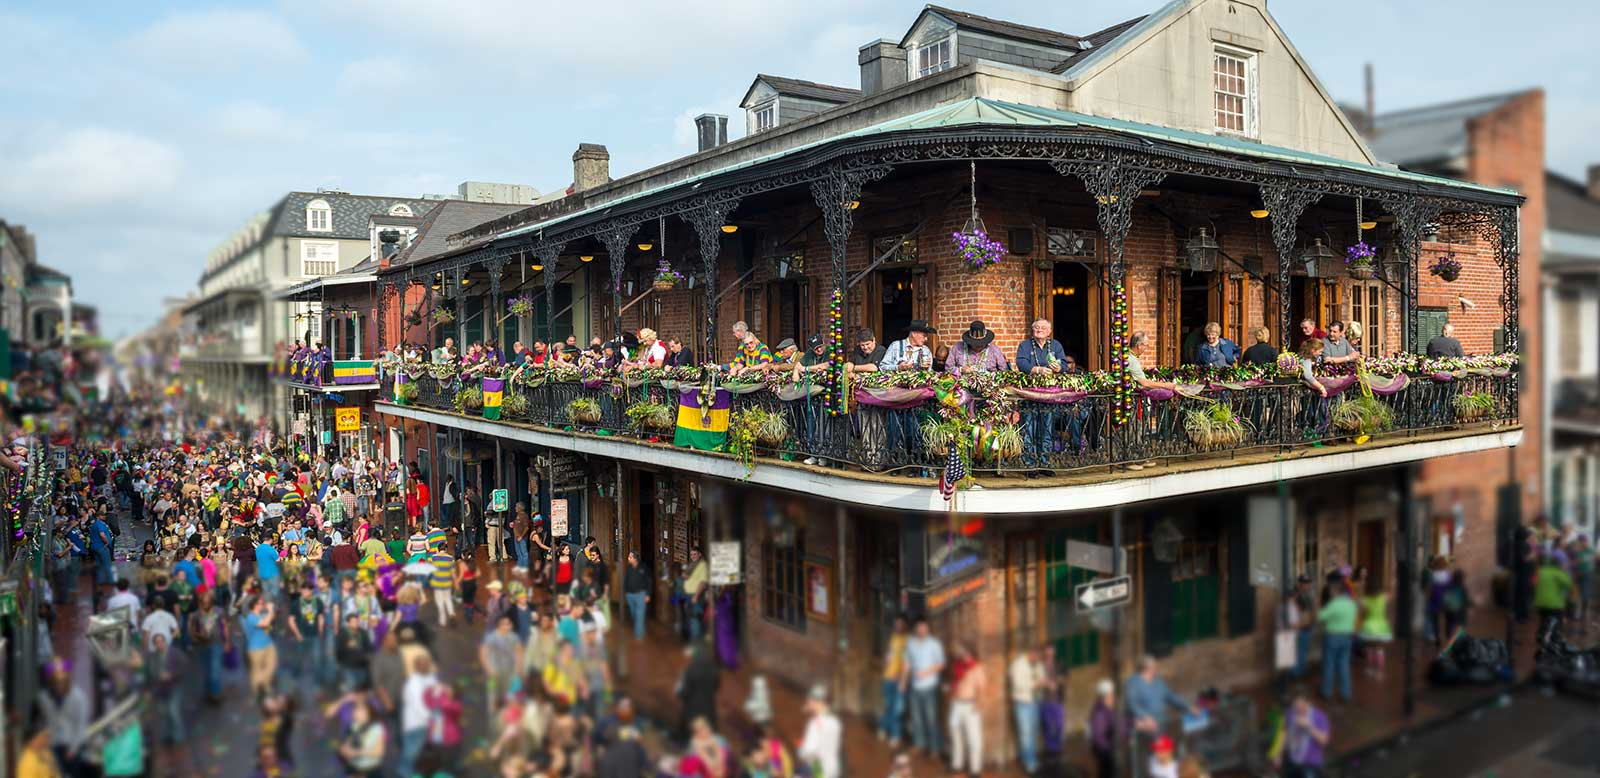 New Orleans Events Calendar 2020 2020 Mardi Gras Parade Schedule | Mardi Gras New Orleans